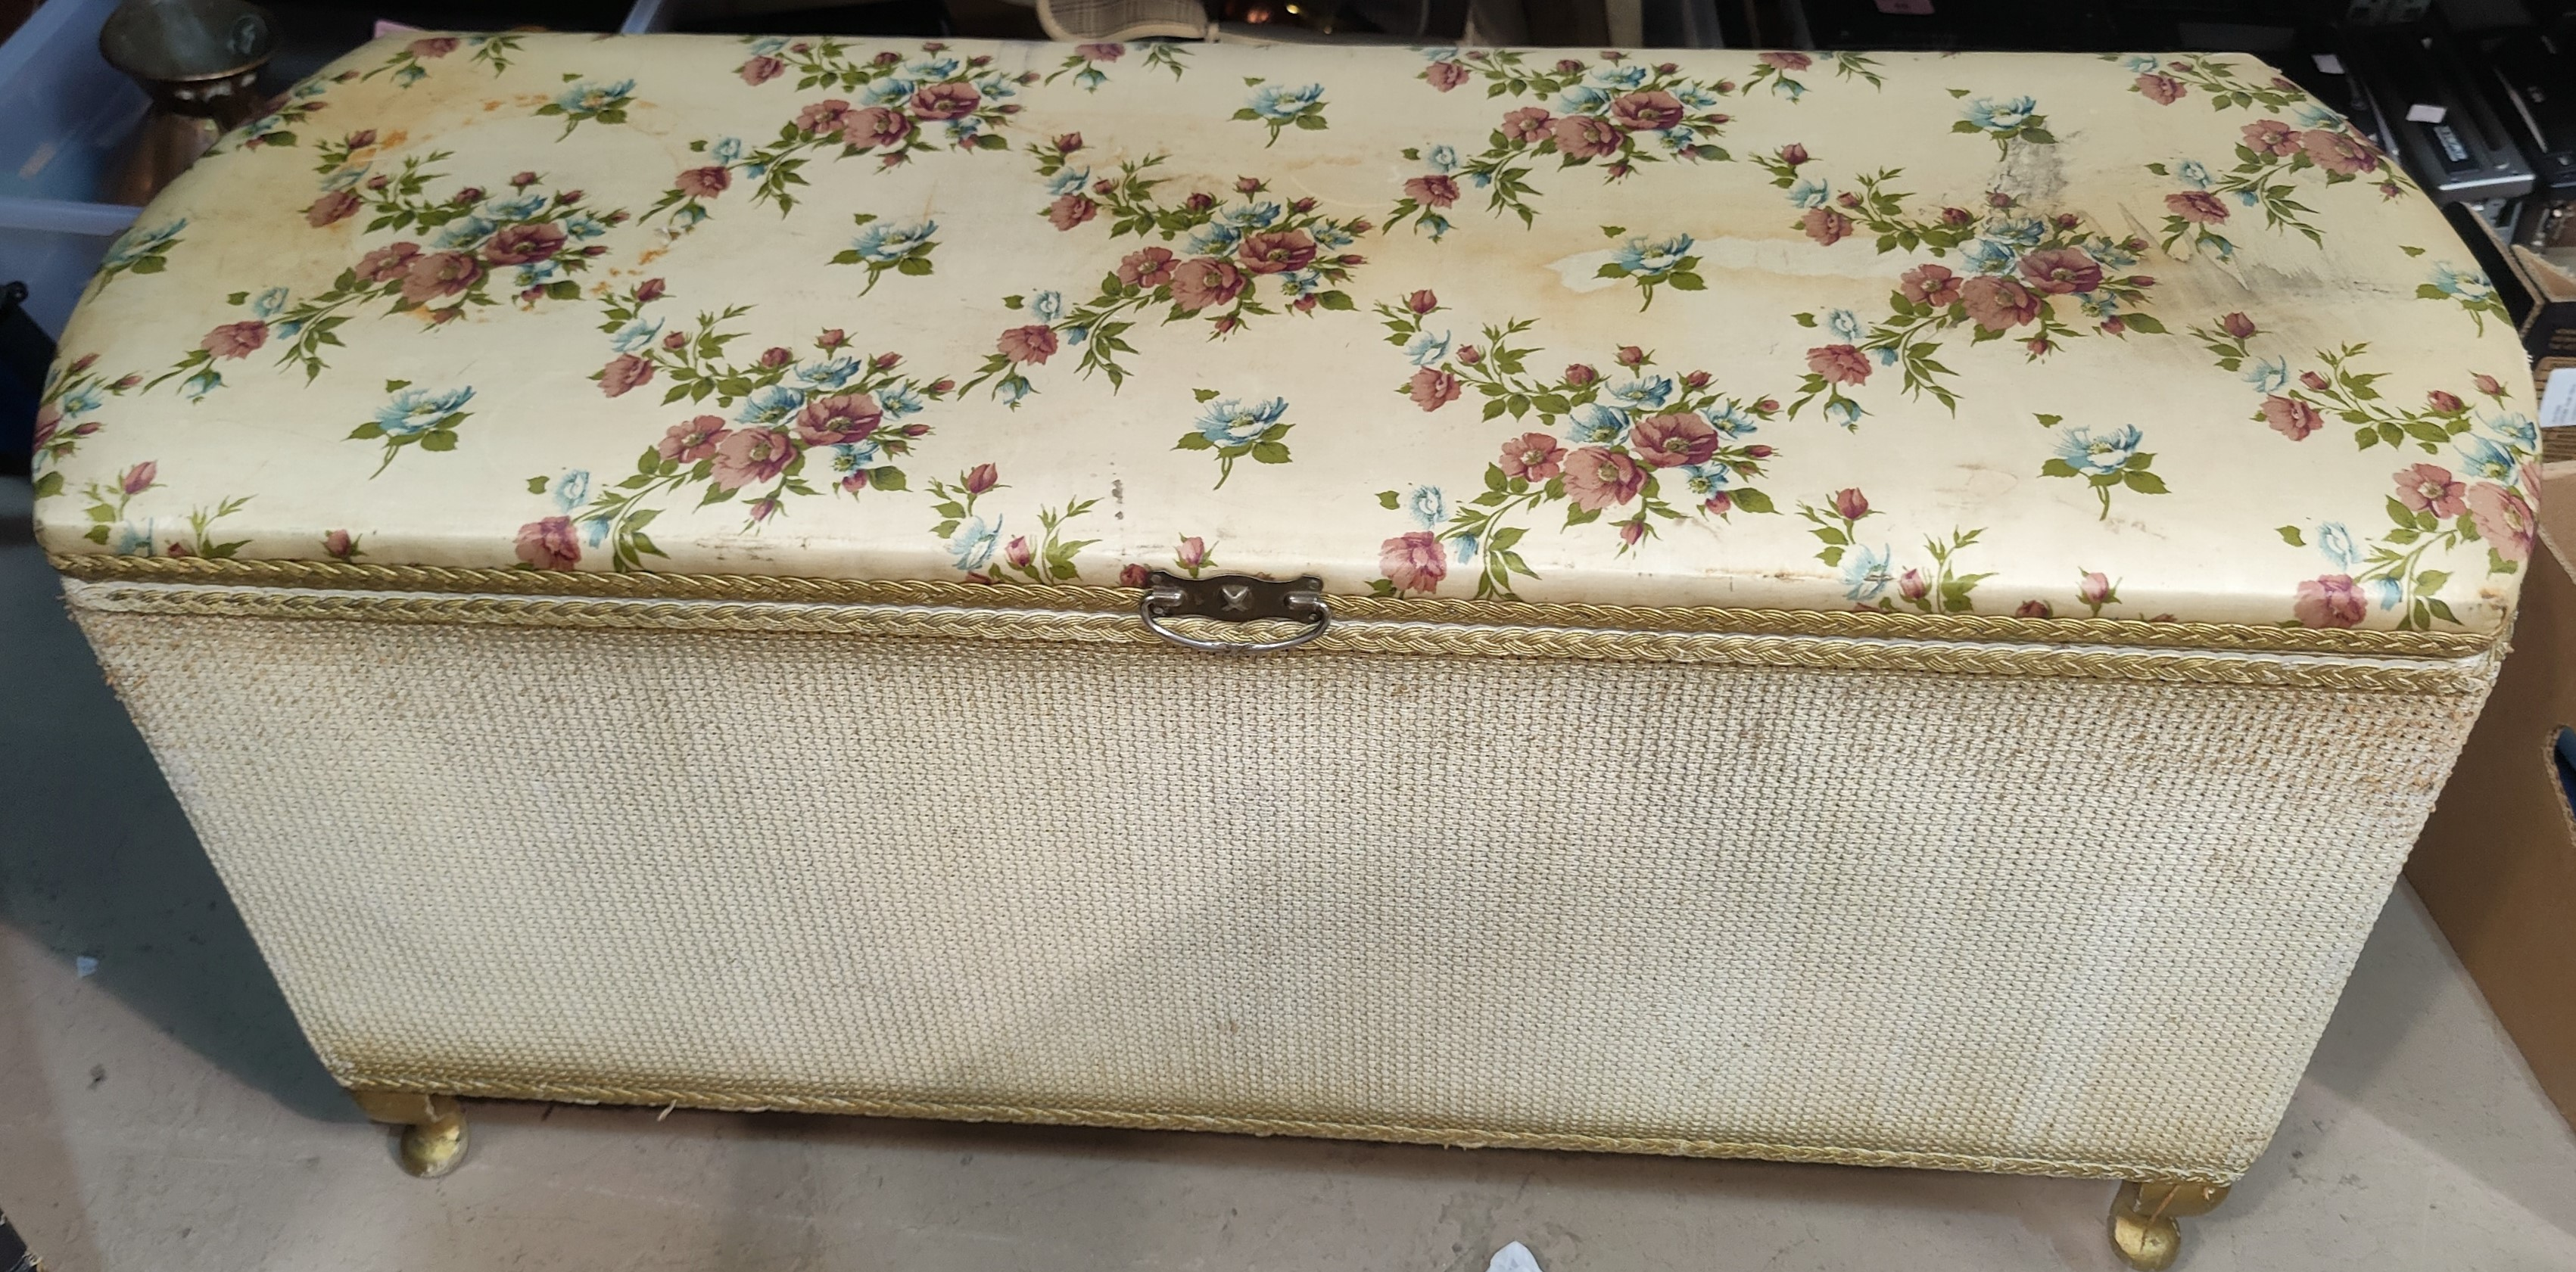 A woven bedding chest